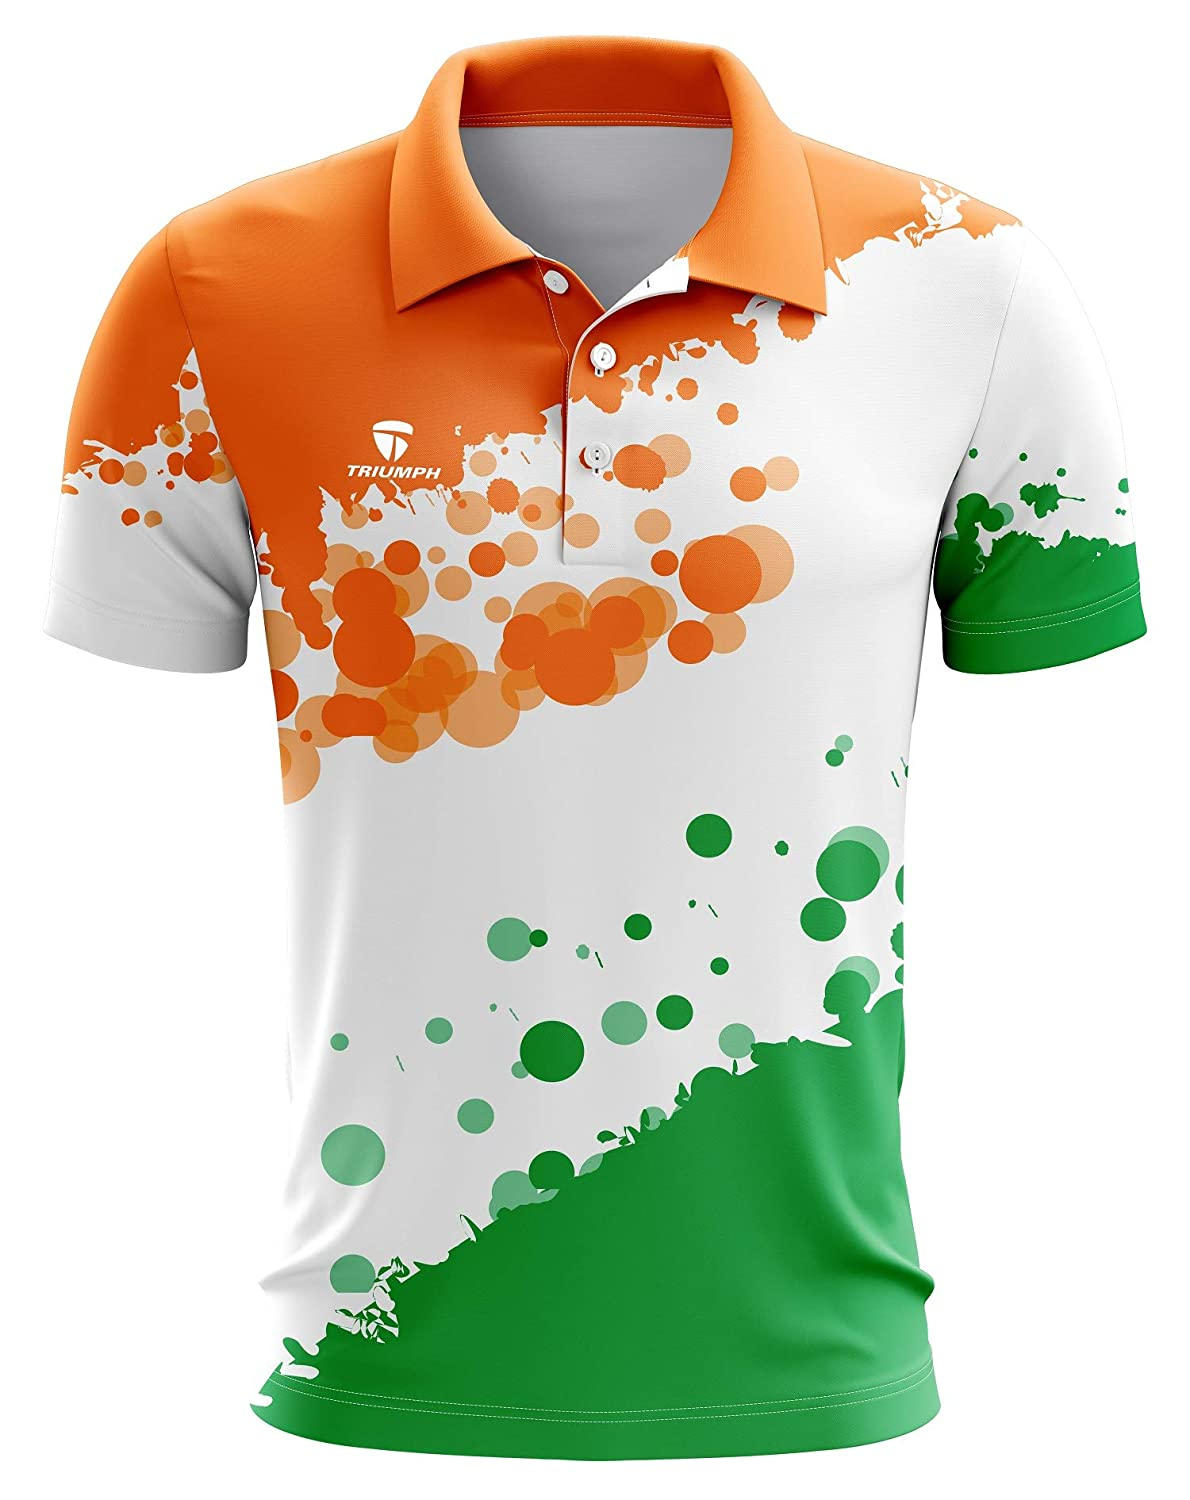 Best Independence Day Special Round Neck T-shirt For Men's 2021